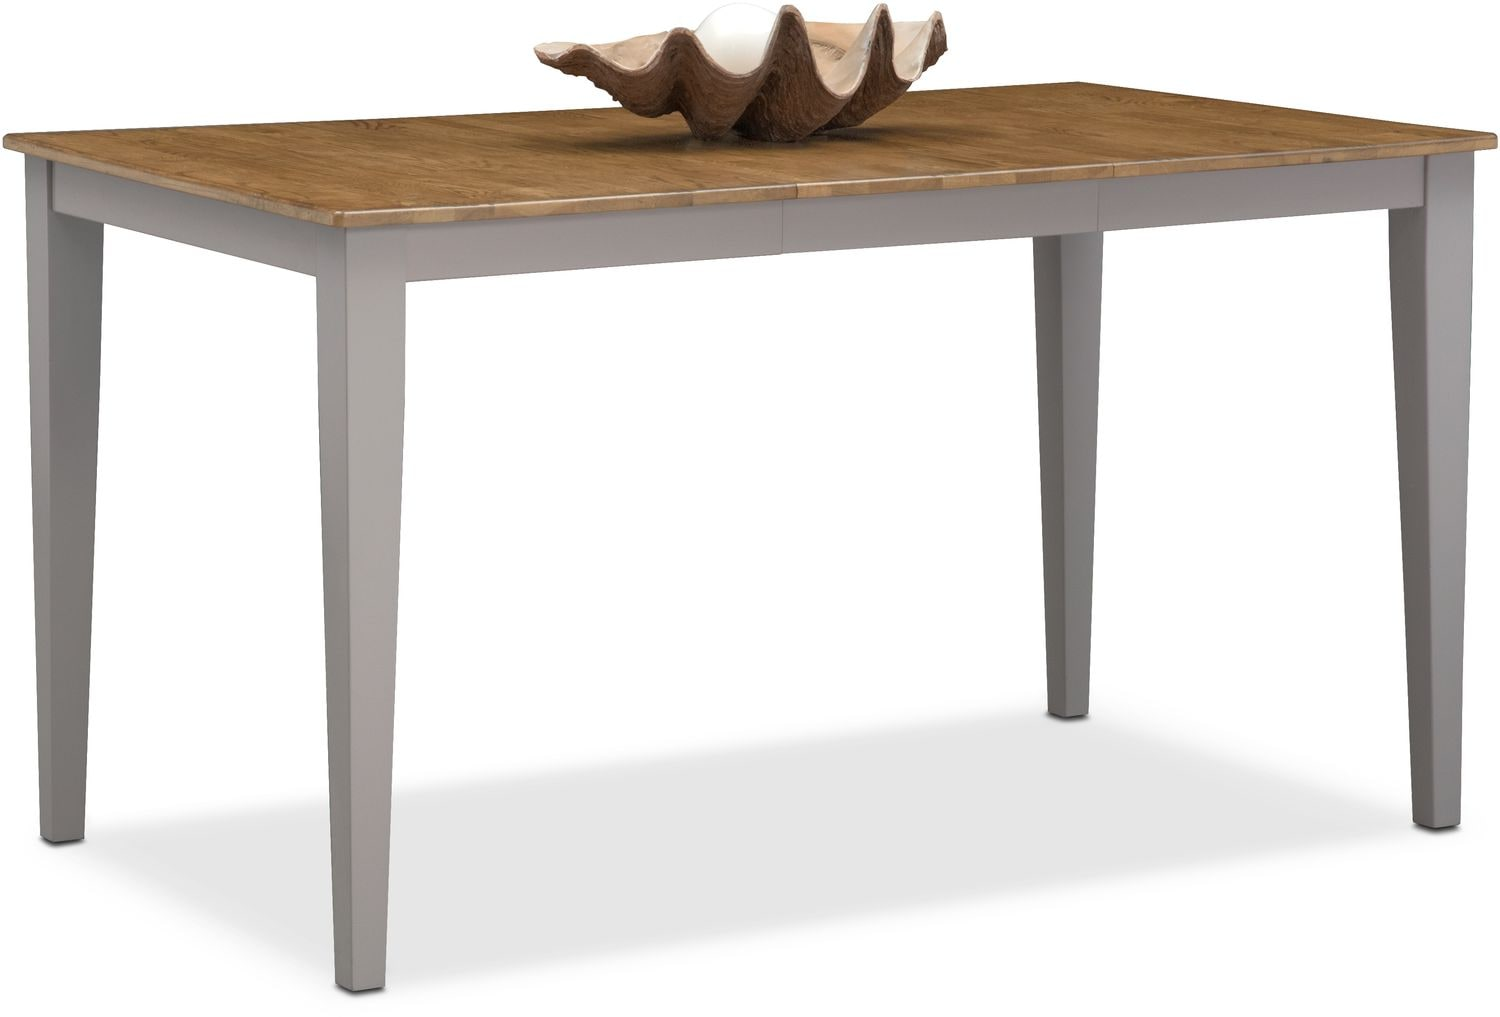 Nantucket Counter-Height Table - Oak and Gray